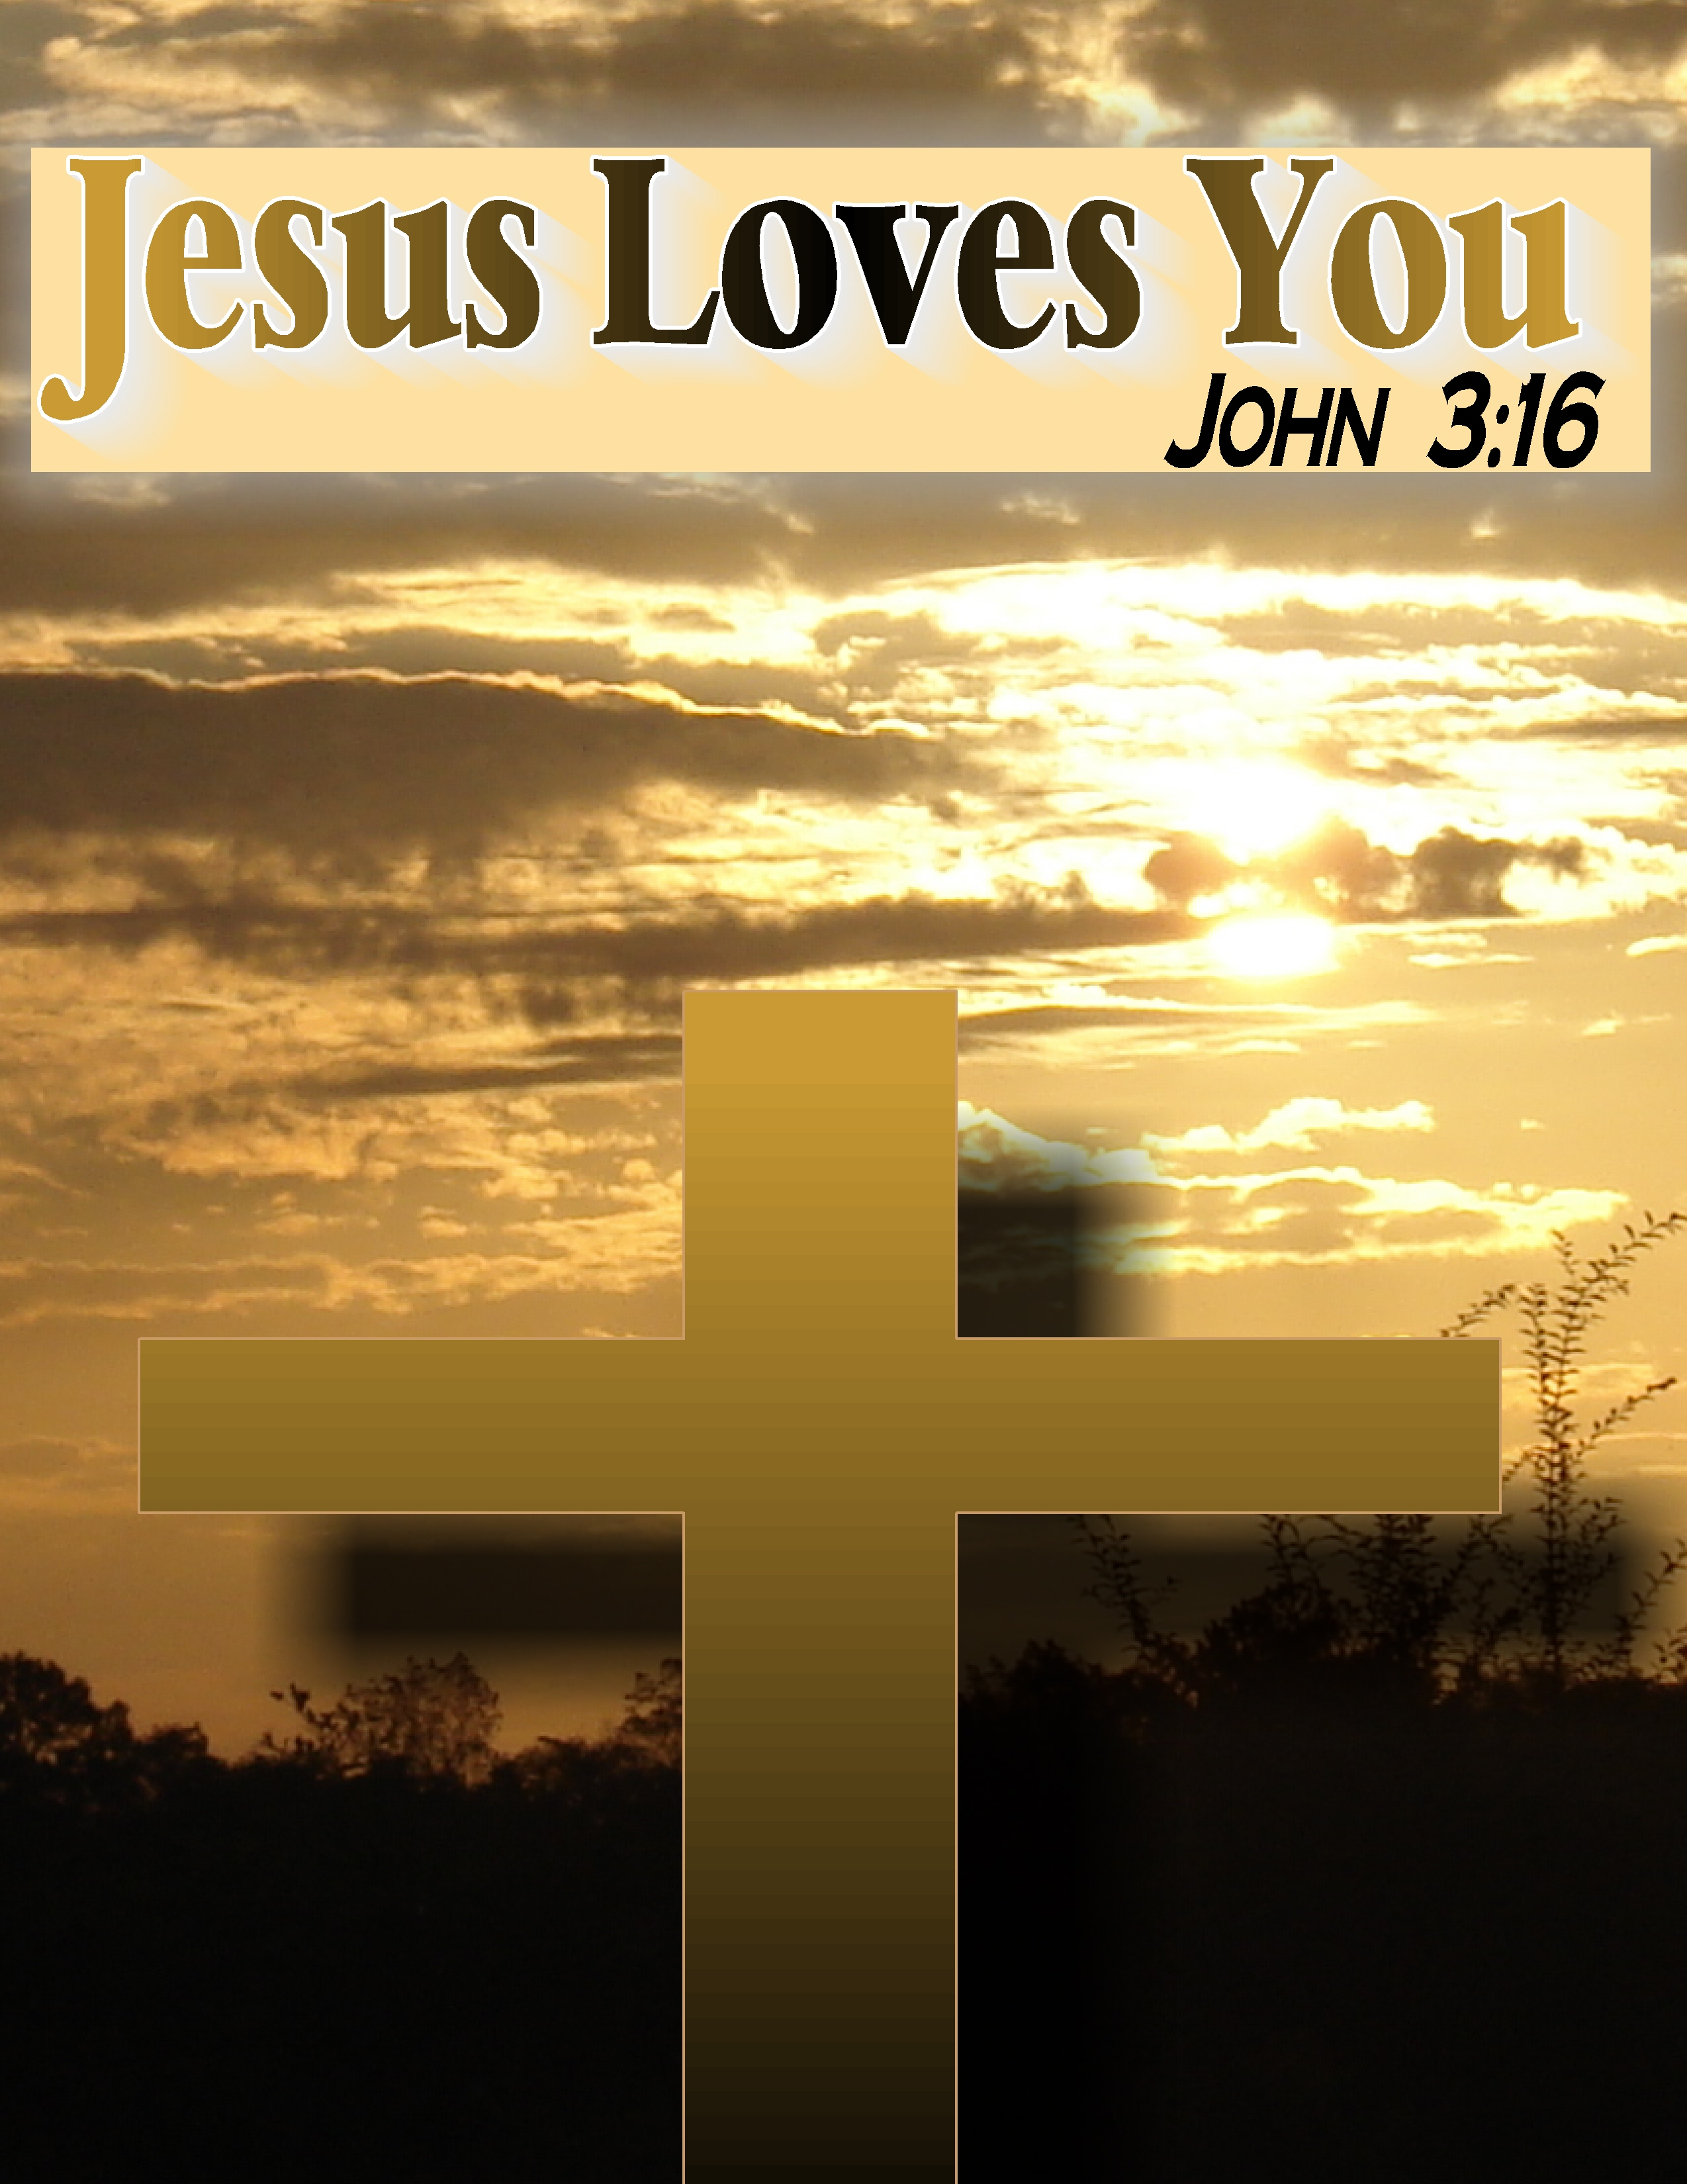 Wallpaper Of Jesus Love : Jesus Loves You Wallpapers